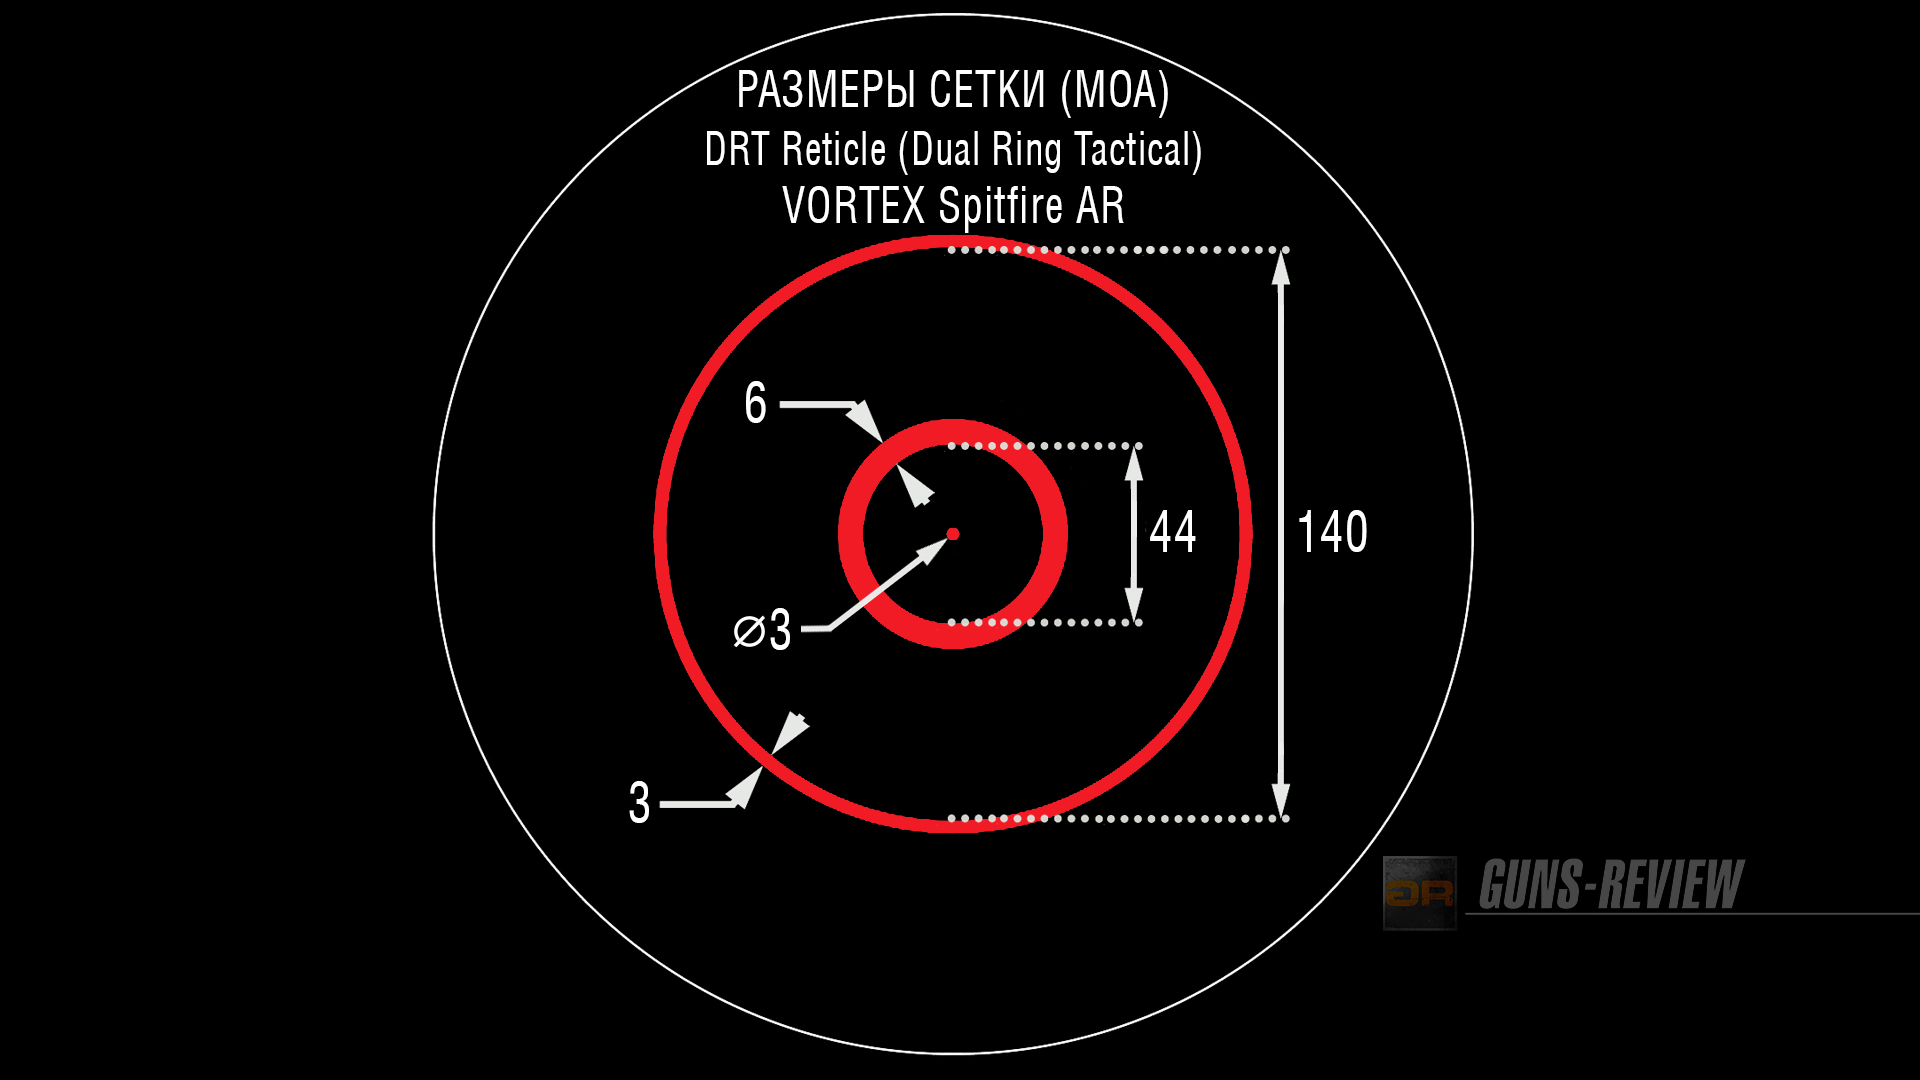 Размеры сетки DRT (Dual Ring Tactical) Vortex Spitfire AR